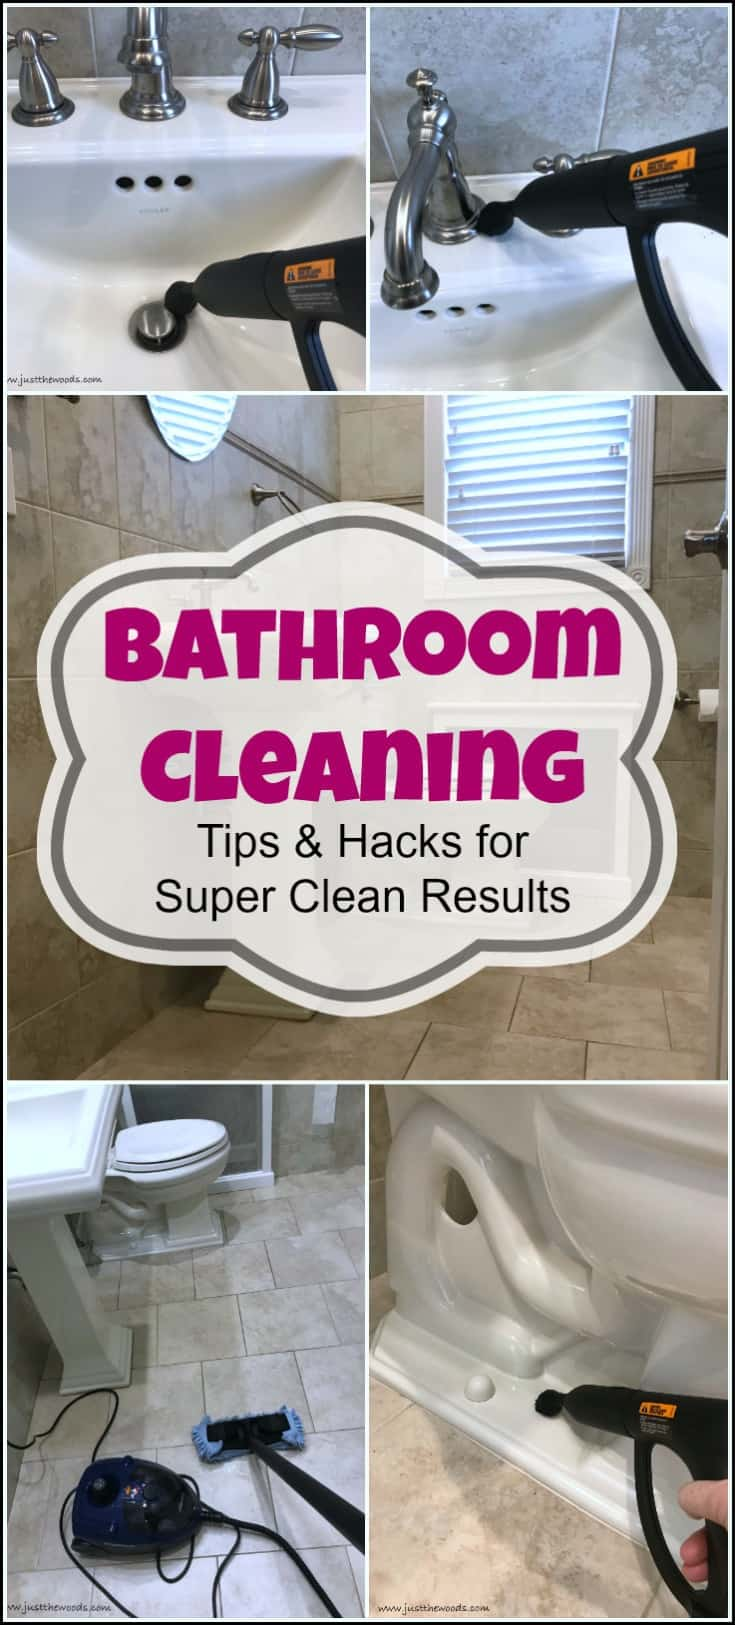 Bathroom cleaning is a dirty job, but someone has to do it. Hopefully, with these bathroom cleaning tips, the chore won't be such a chore. How to clean your bathroom, cleaning bathroom, best way to clean bathroom, clean bathroom, how to clean the bathroom, how to clean bathroom floor, bathroom cleaning hacks, how to clean bathroom sink, bathroom cleaning brush